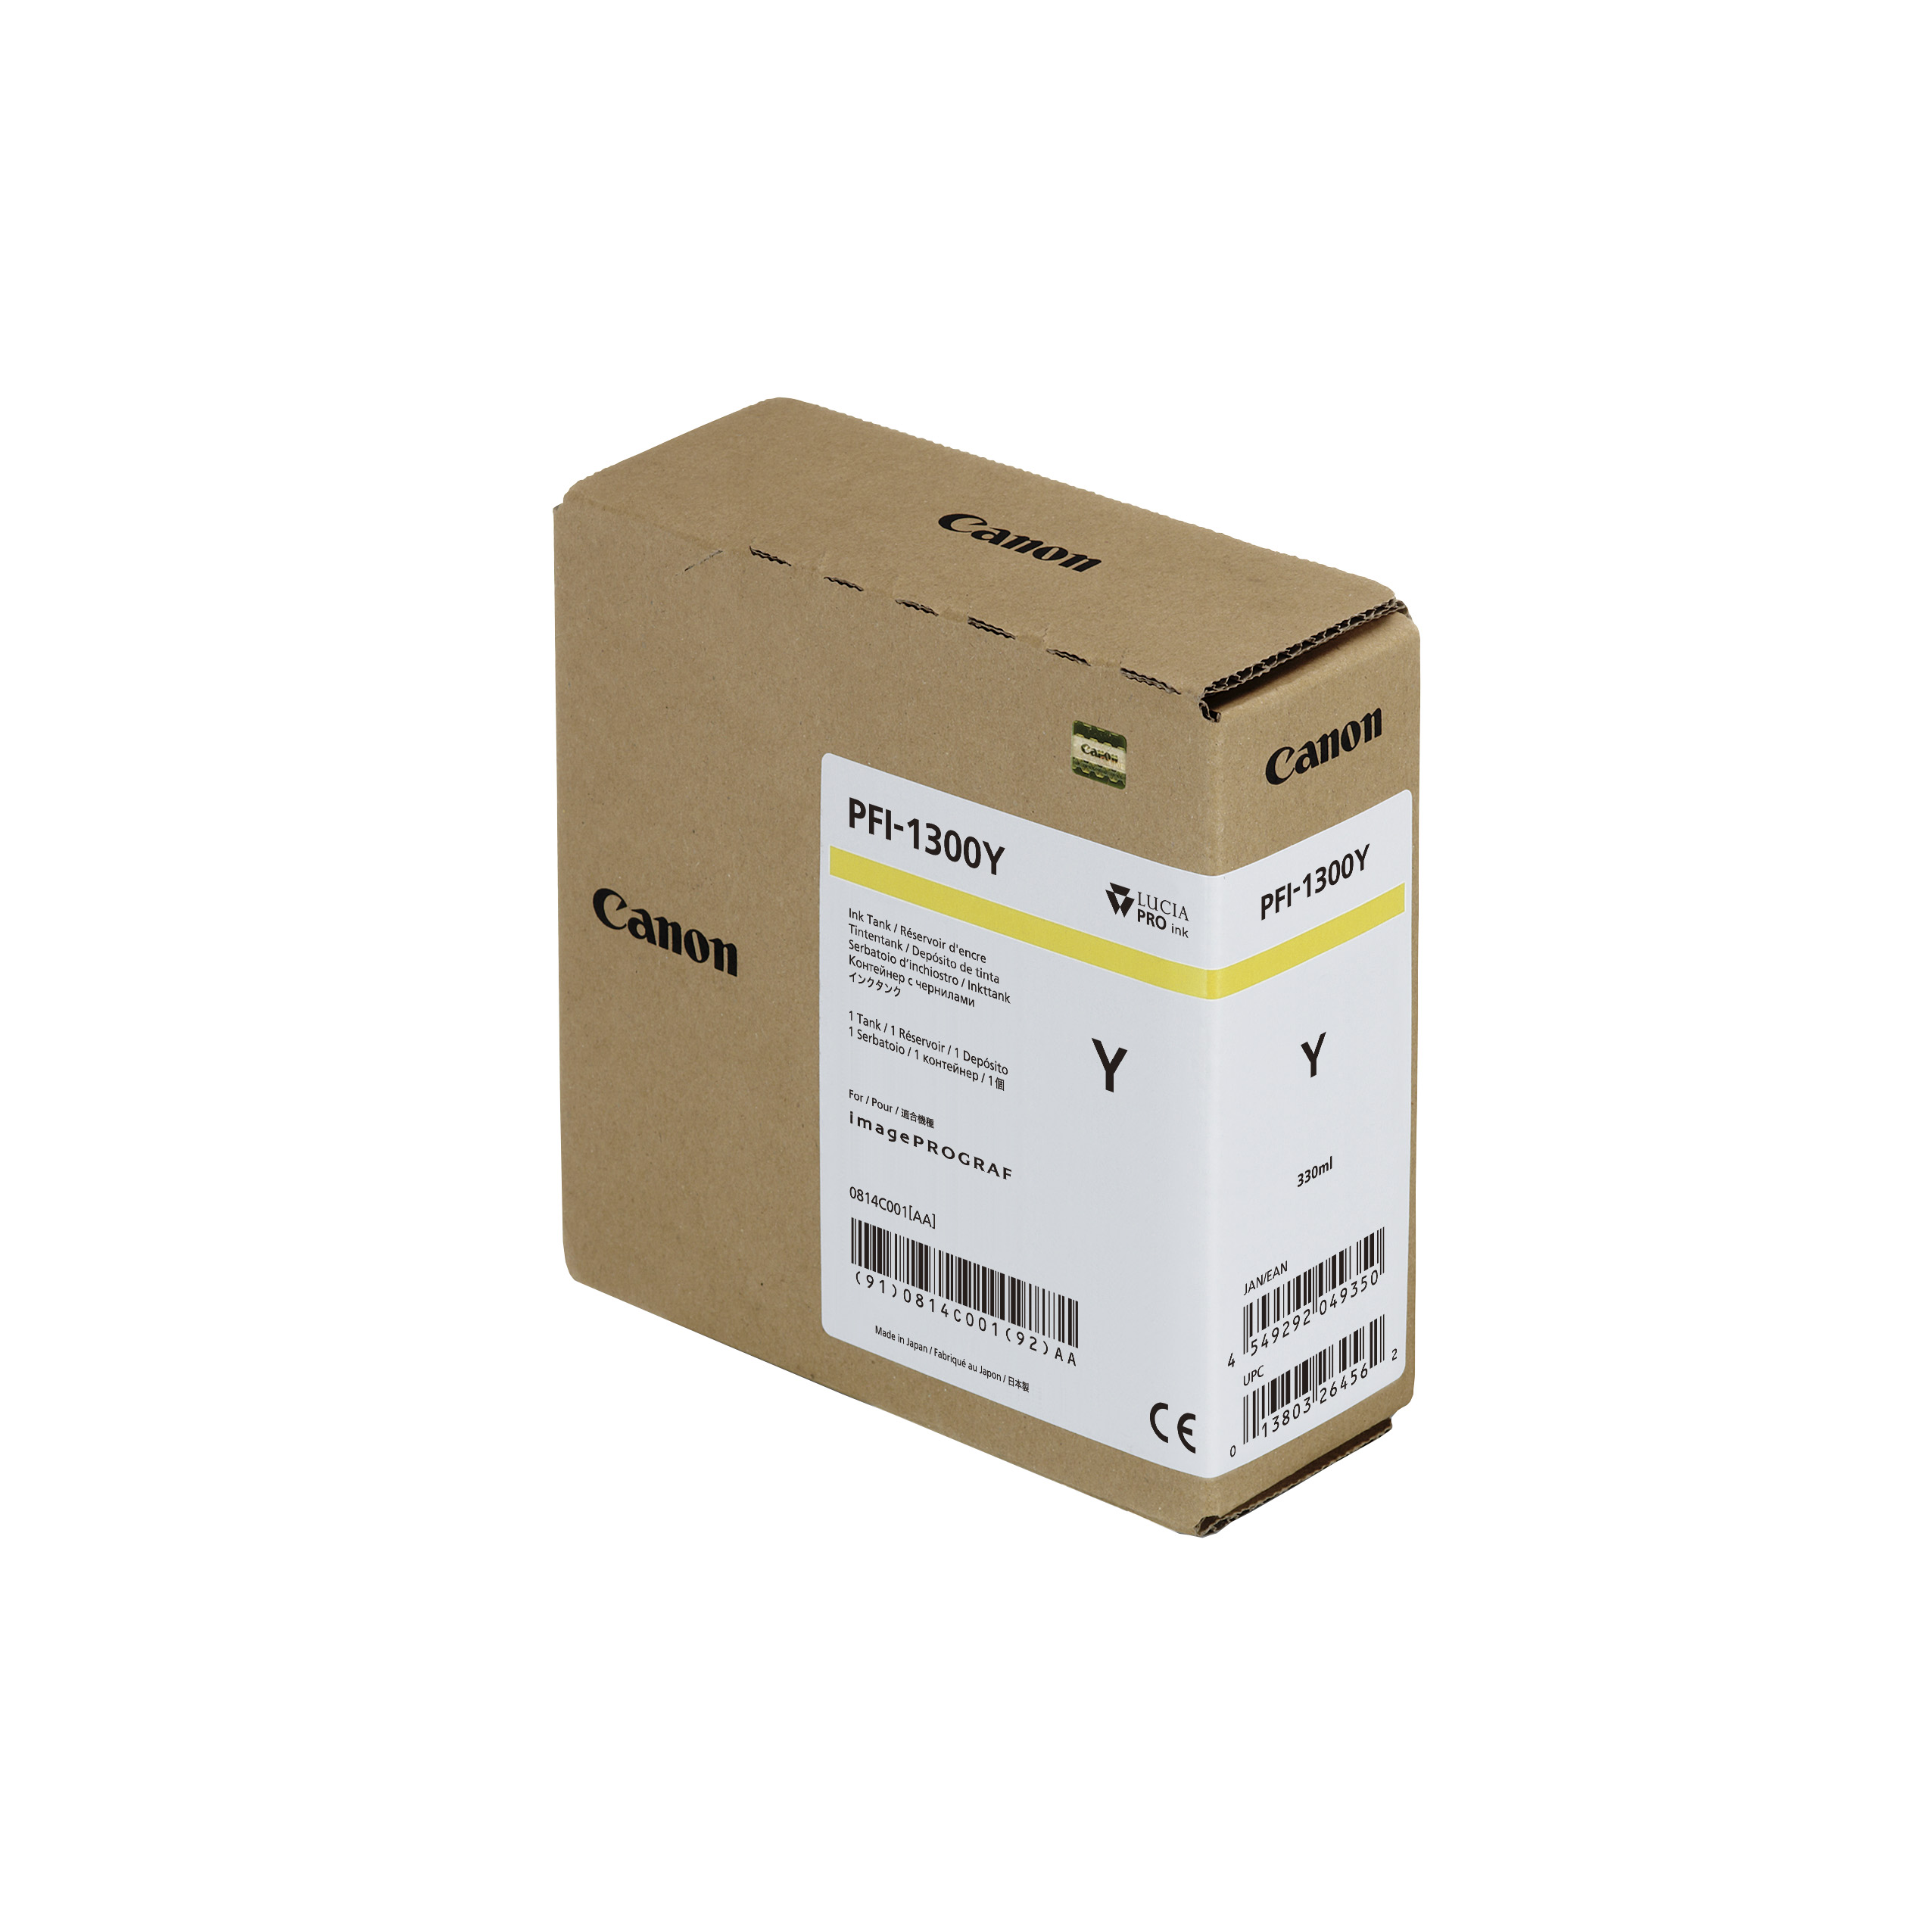 Canon PFI-1300Y Yellow Ink Tank - 3300ml Cartridge - for Canon PRO-2000, PRO-4000, PRO-4000S & PRO-6000S Printer - 0814C001AA - next day delivery from GDS Graphic Design Supplies Ltd